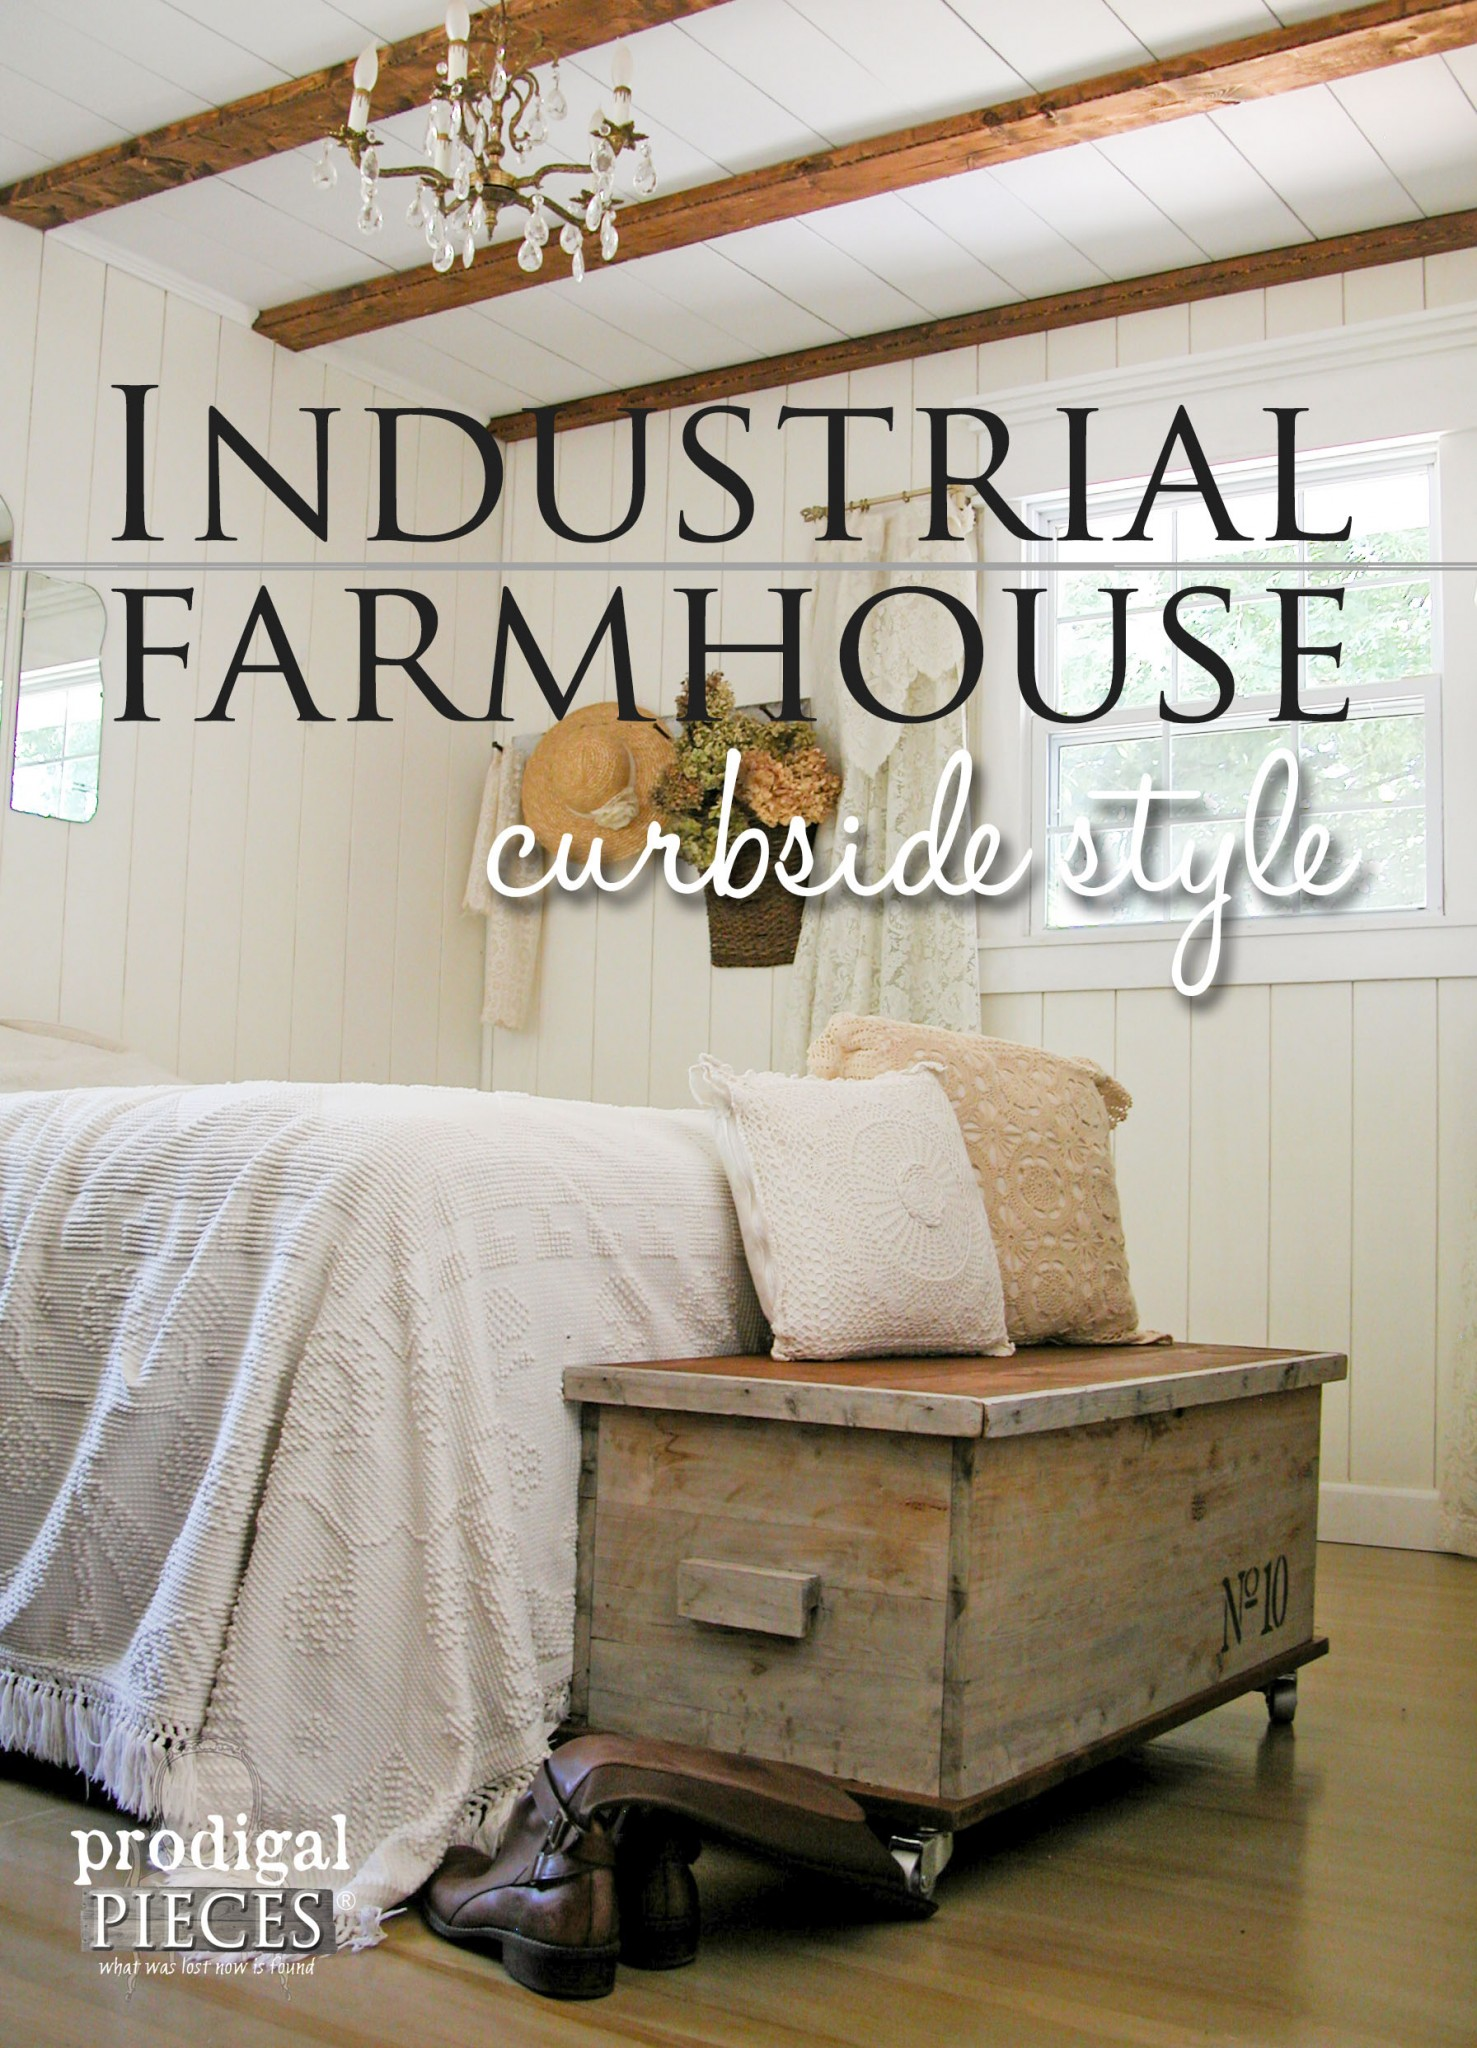 A Cedar Chest Found in the Trash Becomes Industrial Style Decor in this Farmhouse Bedroom by Prodigal Pieces | www.prodigalpieces.com